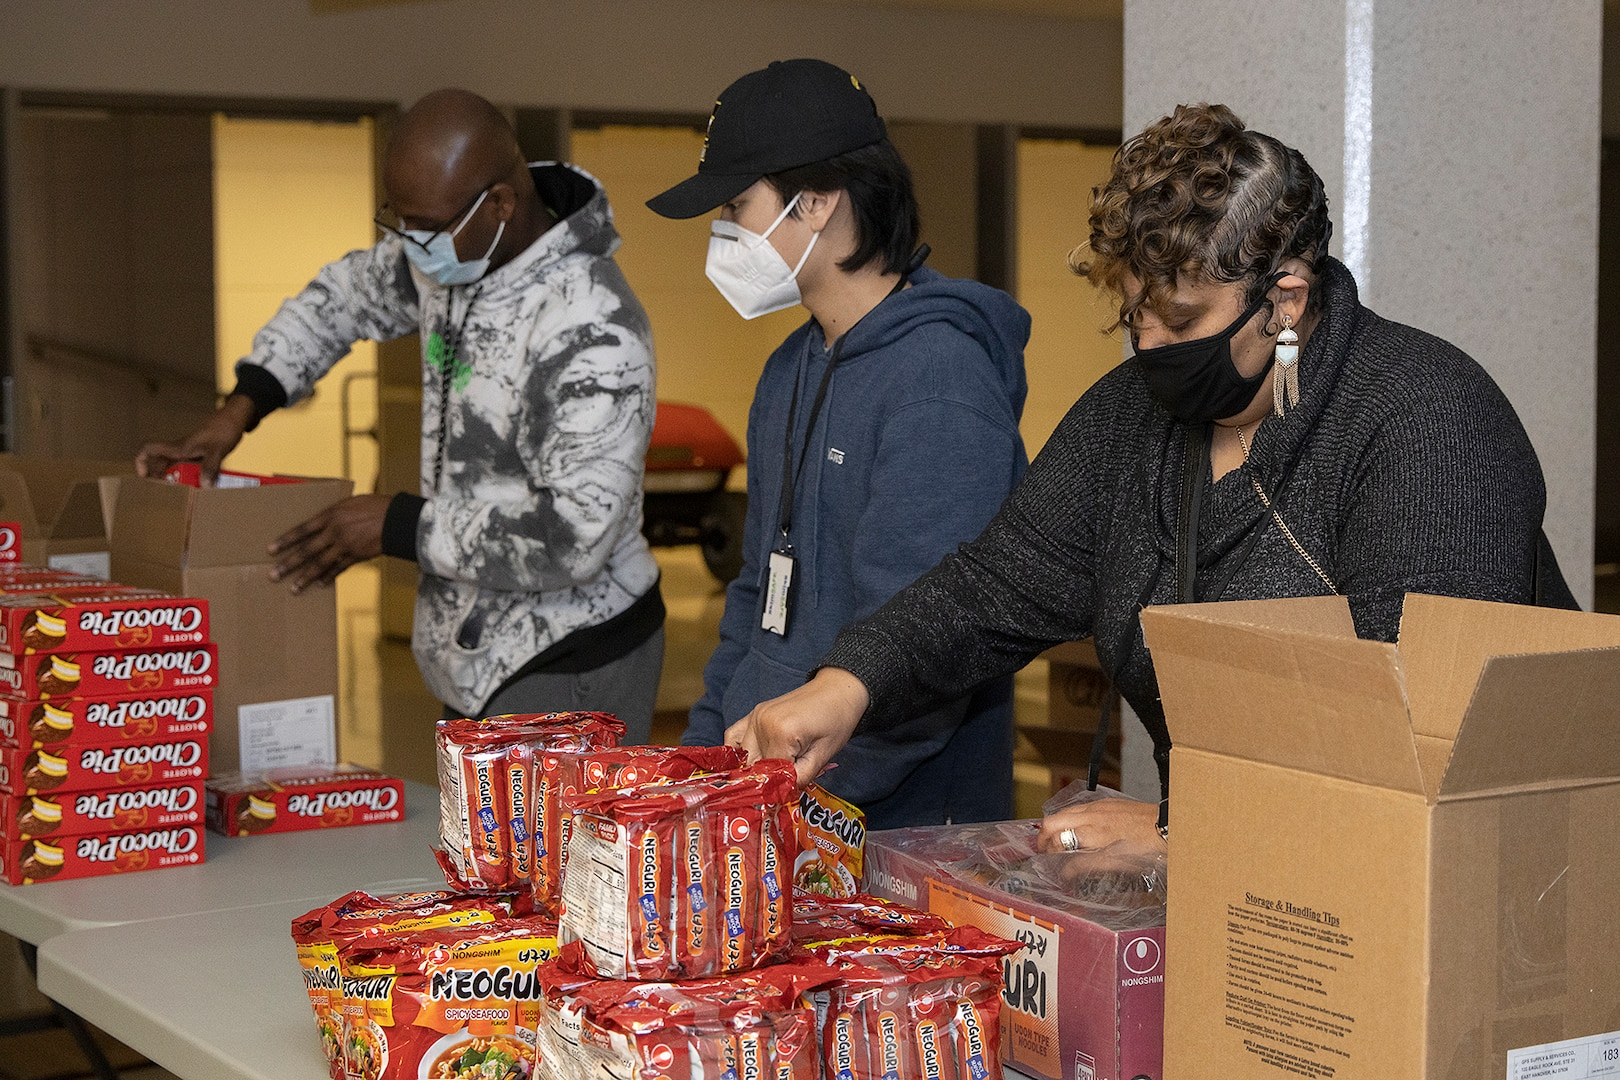 Shani Adams-Houston, right, wife of Ronald Houston, U.S. Army Financial Management Command Army Military Pay Office site captain, load up Soldier care packages at the Maj. Gen. Emmett J. Bean Federal Center in Indianapolis March 6, 2021. Houston joined Army Soldiers, civilian employees, veterans and retirees to make care packages, which will be sent to deployed Soldiers of the U.S. Army Reserve's 310th Expeditionary Sustainment Command. (U.S. Army photo by Mark R. W. Orders-Woempner)